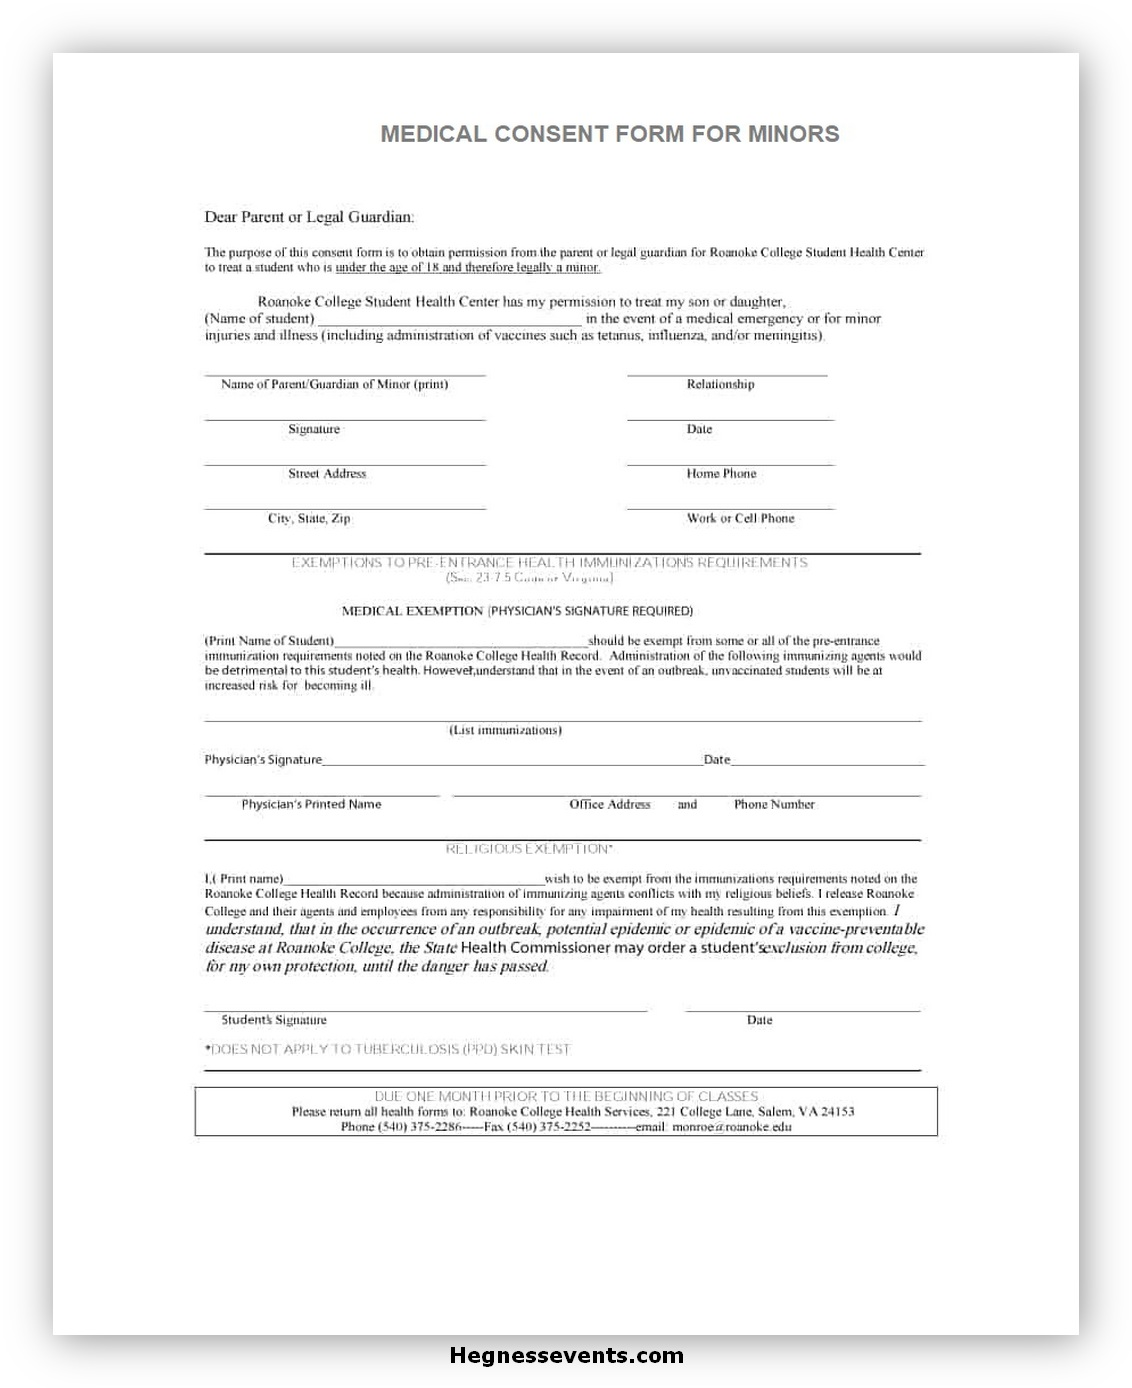 Medical Consent Form for A Minor 01